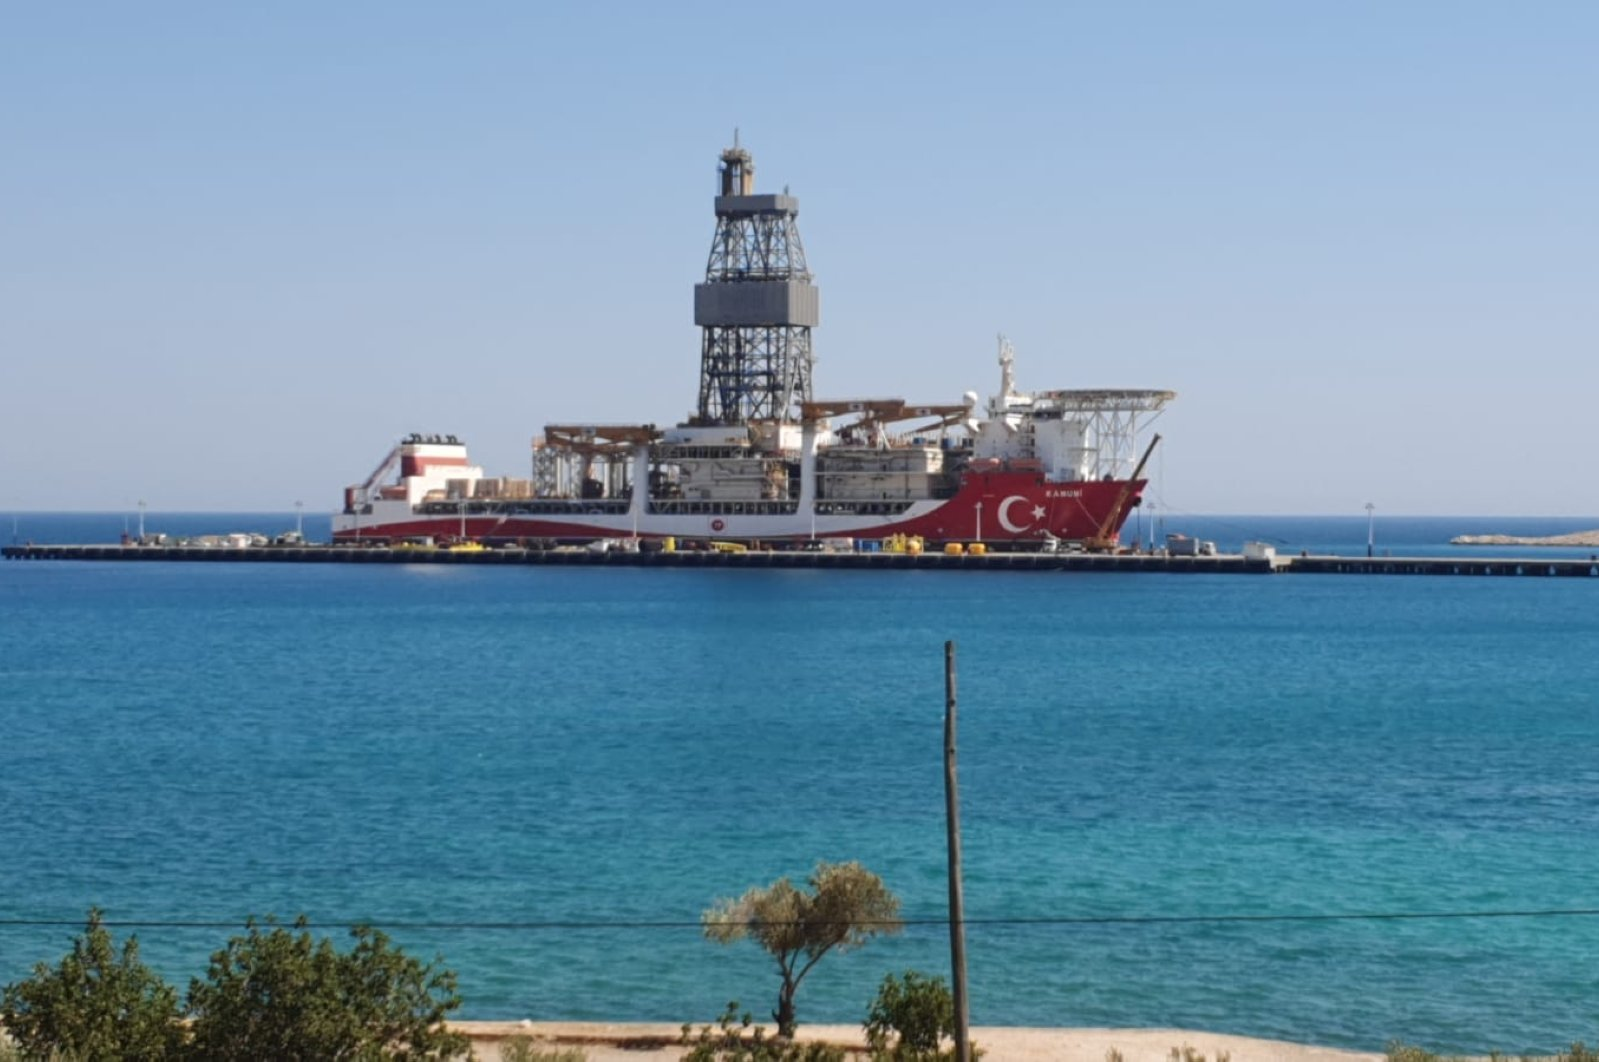 Turkey's third drillship Kanuni docked at the NATO port in Incekum in the Silifke district of Mersin province, southern Turkey, Sept. 11, 2020. (DHA Photo)